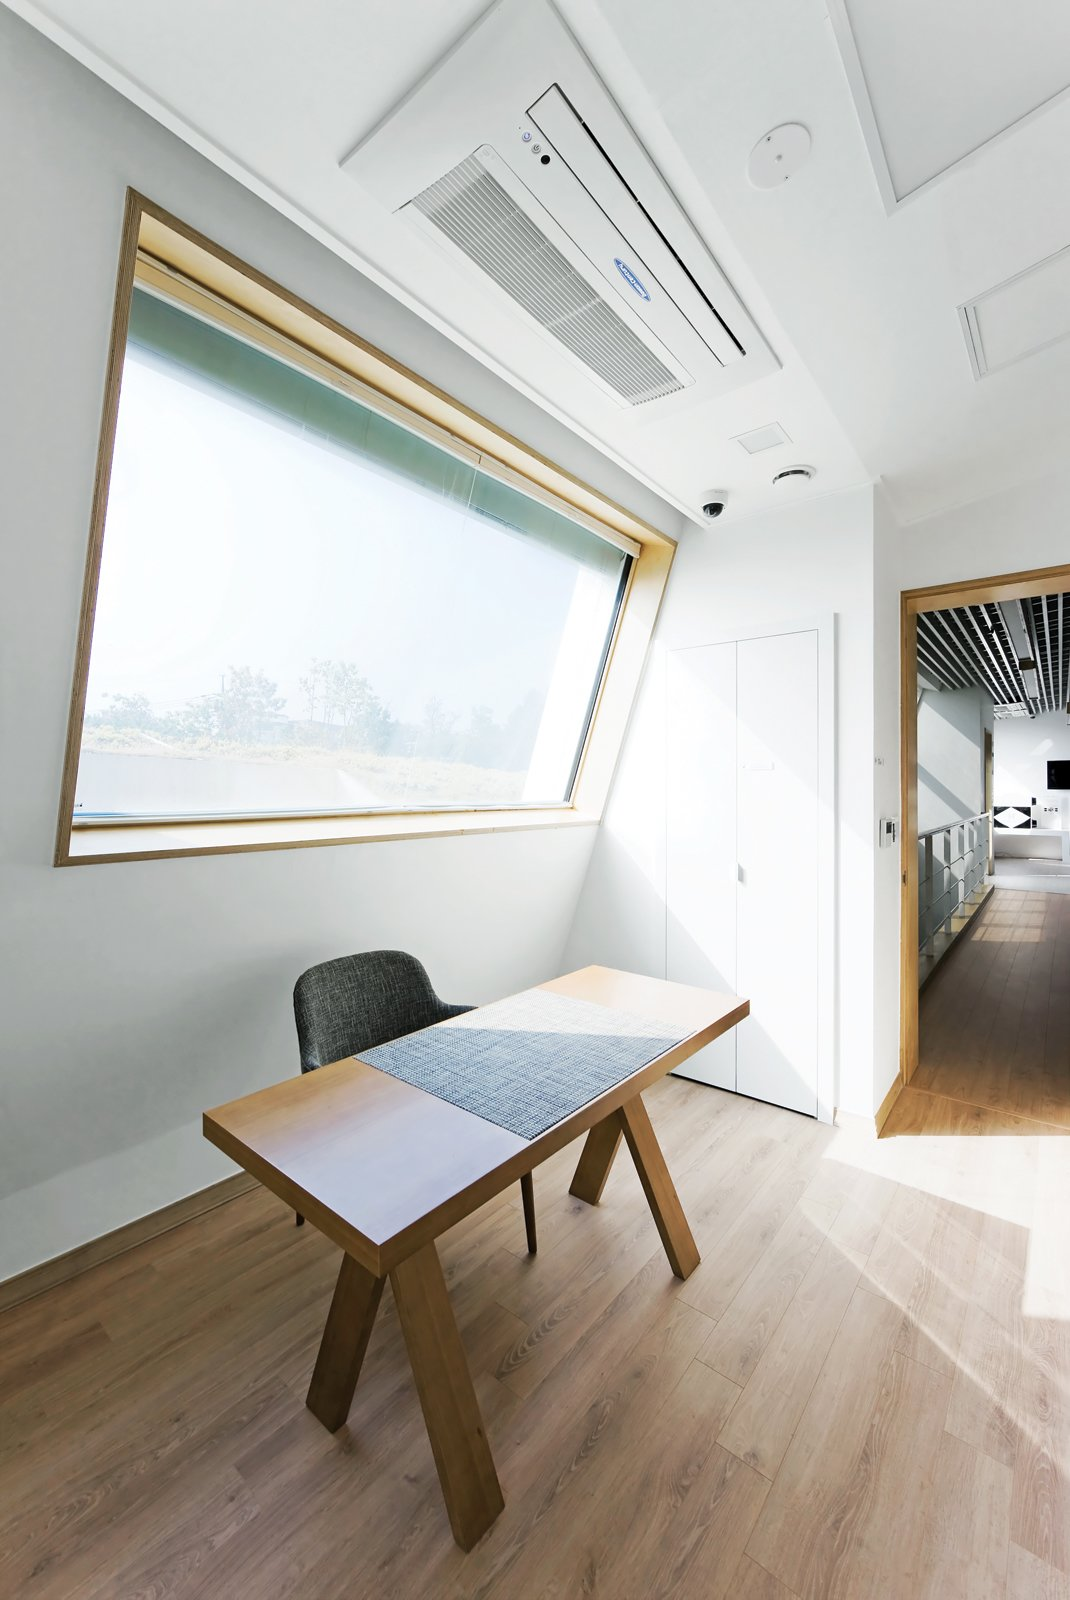 Just Venting  Though a tight thermal envelope is critical to the E+ Home's sustainability,   Kolon's heat recovery ventilation and air filtration systems (above the desk) help ease the load.  Photo 4 of 10 in Modern Green Concept House in South Korea